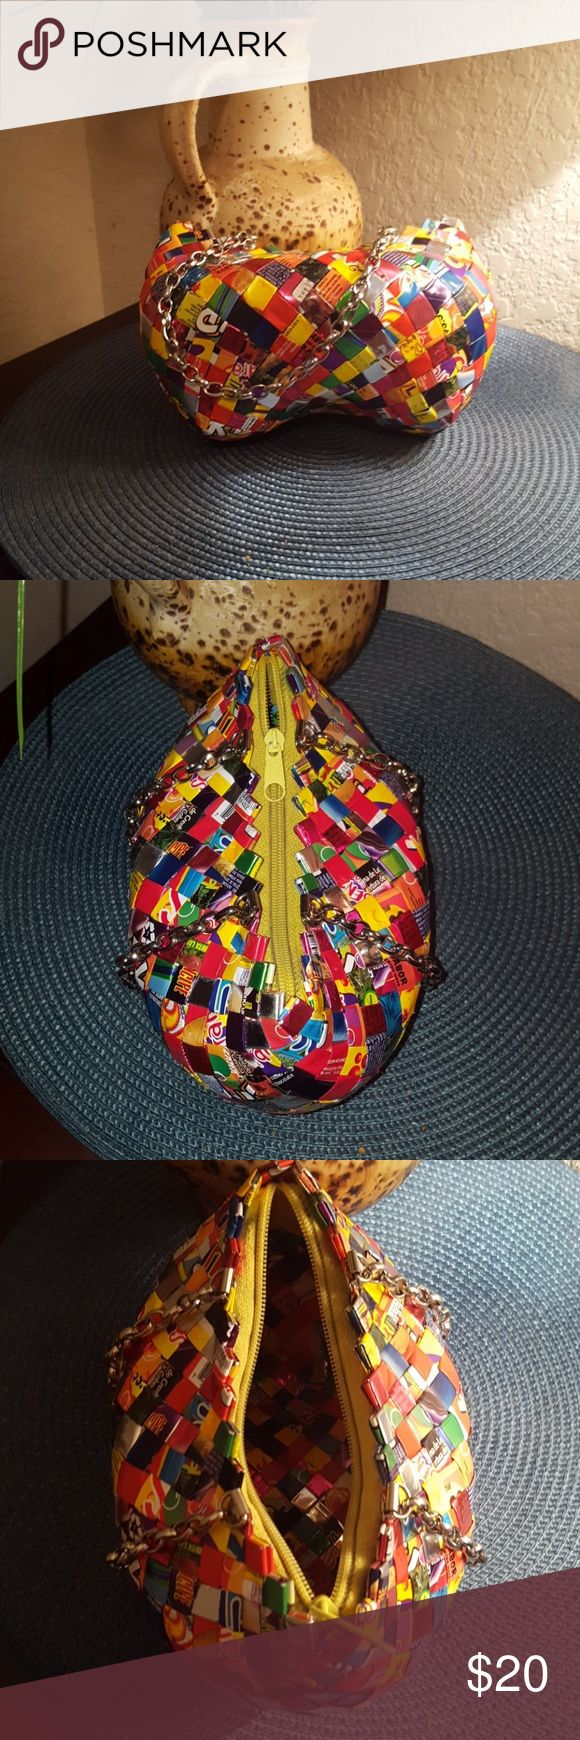 One of a kind! Candy wrapper purse Handmade woven candy wrappers.  Slight wear on bottom as pictured.   Super cute and unique! Bags Mini Bags